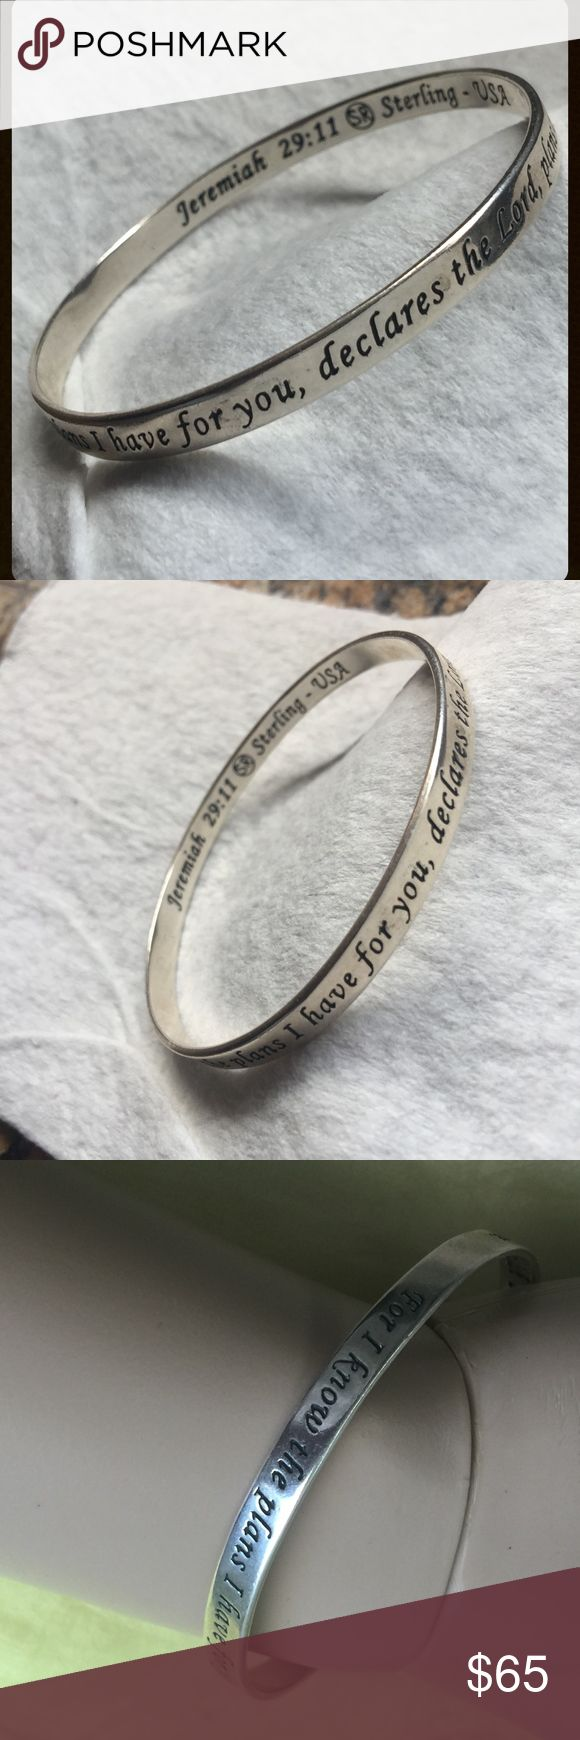 """Vintage Sterling Jeremiah 29:11 Scripture Bracelet Found this lovely, solid sterling silver scripture bangle bracelet that features comforting words from Jeremiah 29:11. The Exterior inscription reads: For I know the plans I have for you, declares the lord, plans to prosper and to give you hope and a future -  Interior inscription: Jeremiah 29:11 (SR) Sterling USA / Approx. 18.4 grams - 2-1/2"""" diameter and 7.75"""" around - Has not been cleaned but otherwise very good pre-owned, loved and word…"""